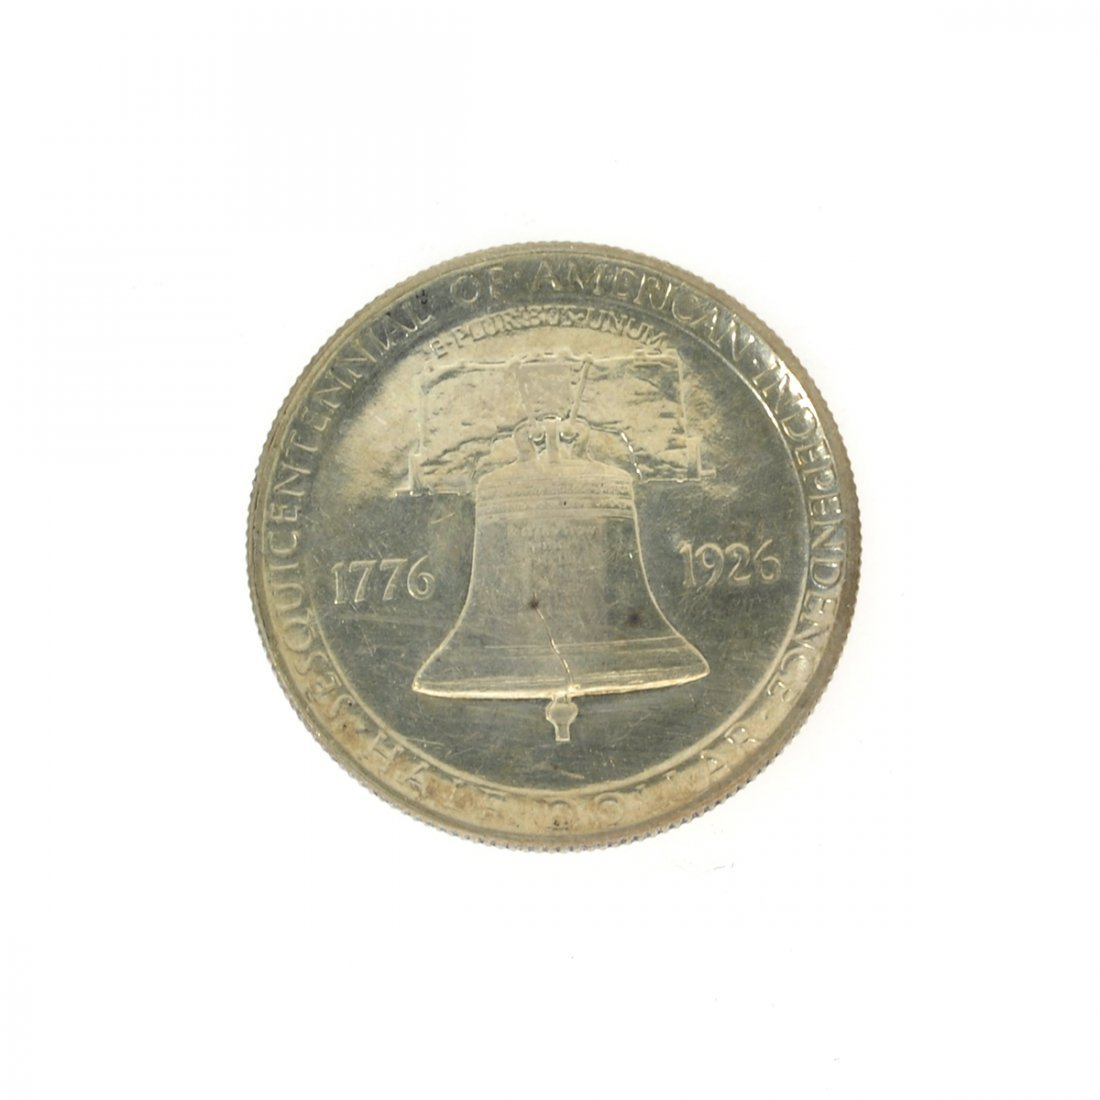 Rare 1926 Sesquicentennial Of American Independence - 2